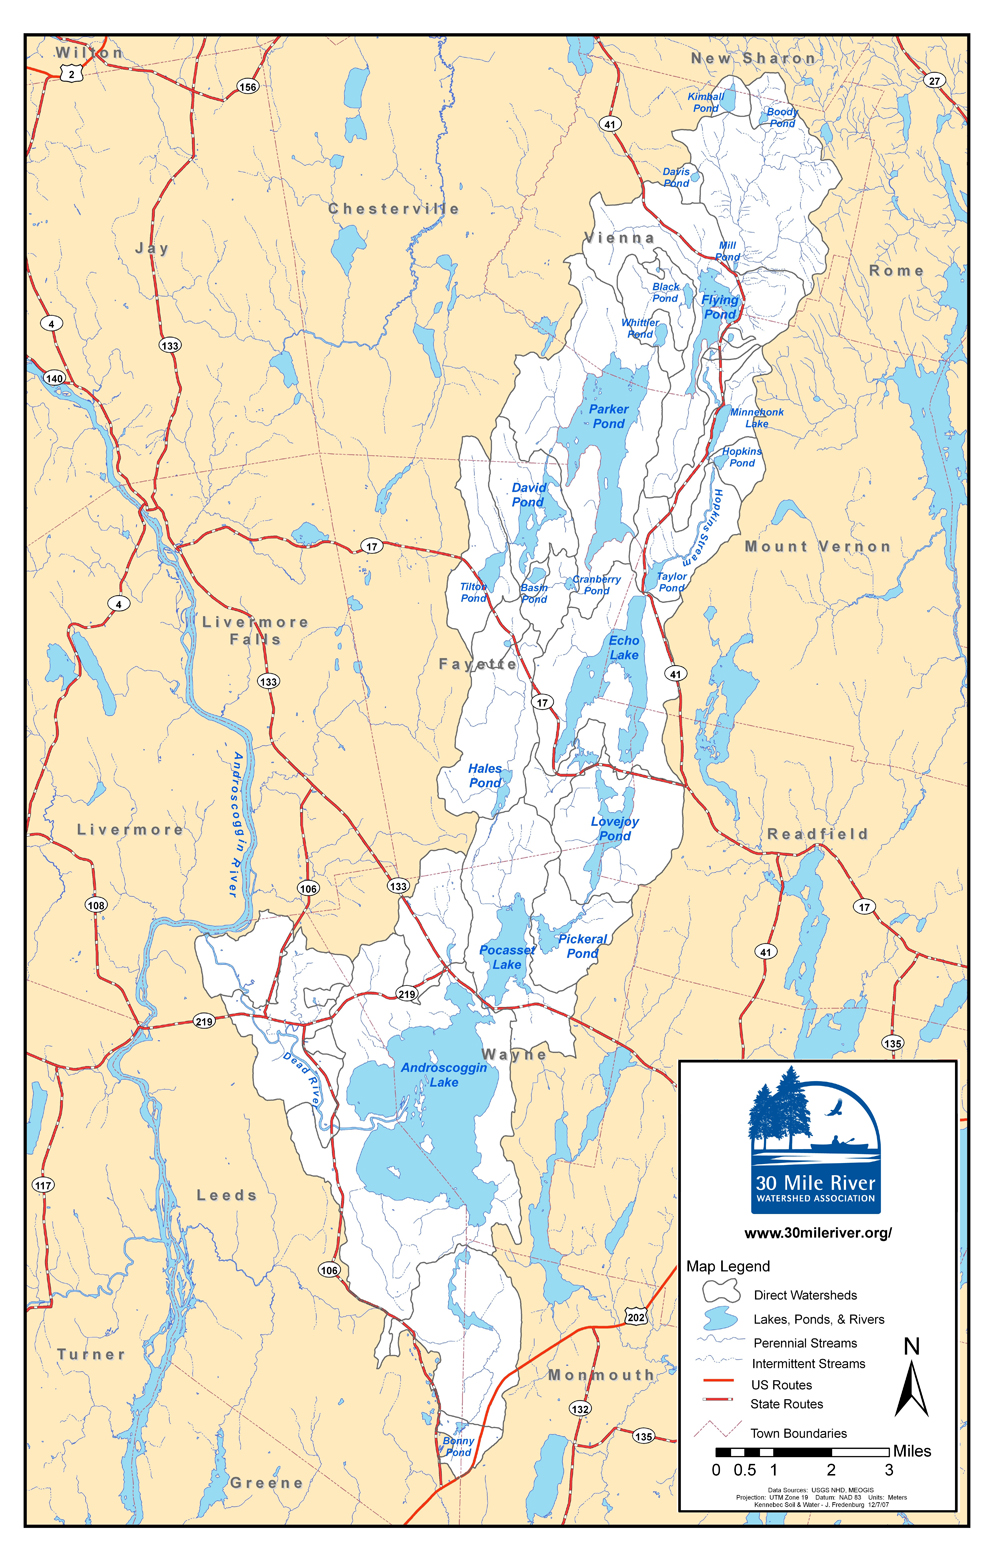 Watershed Map of the 30 Mile River Watershed Association